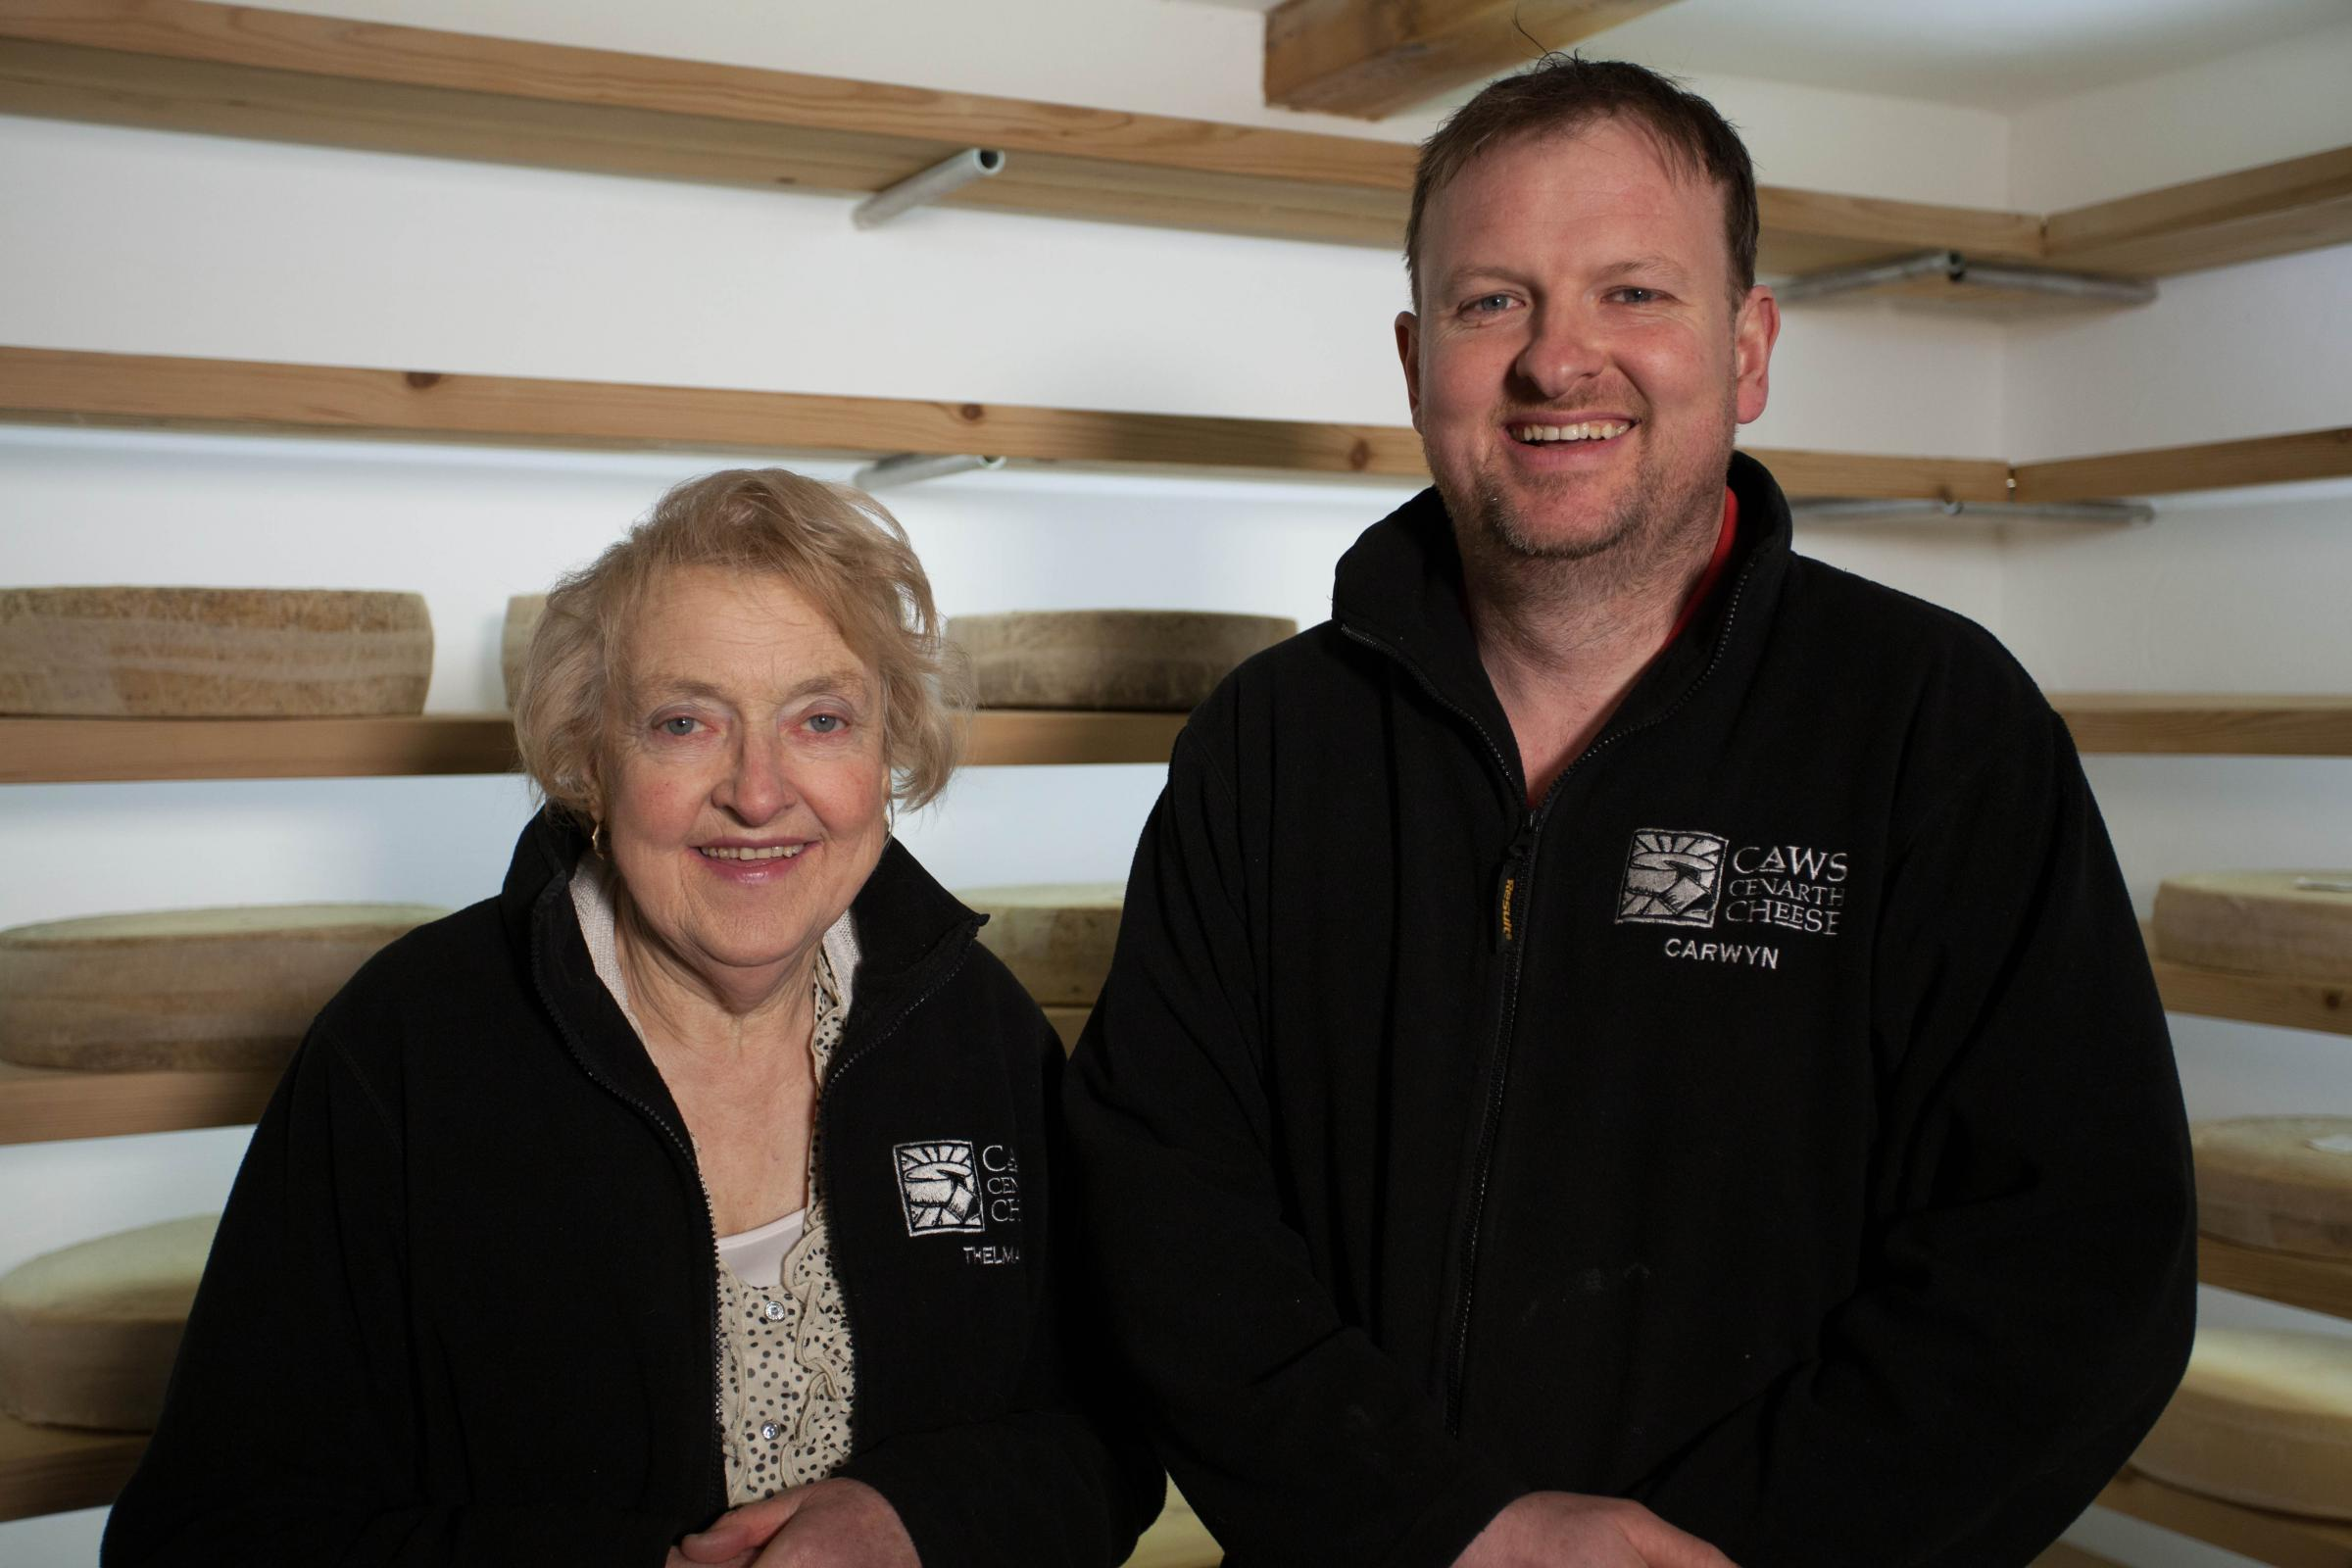 Mother and son Thelma and Carwyn Adams from Caws Cenarth have welcomed European protected status for traditional Caerphilly cheese